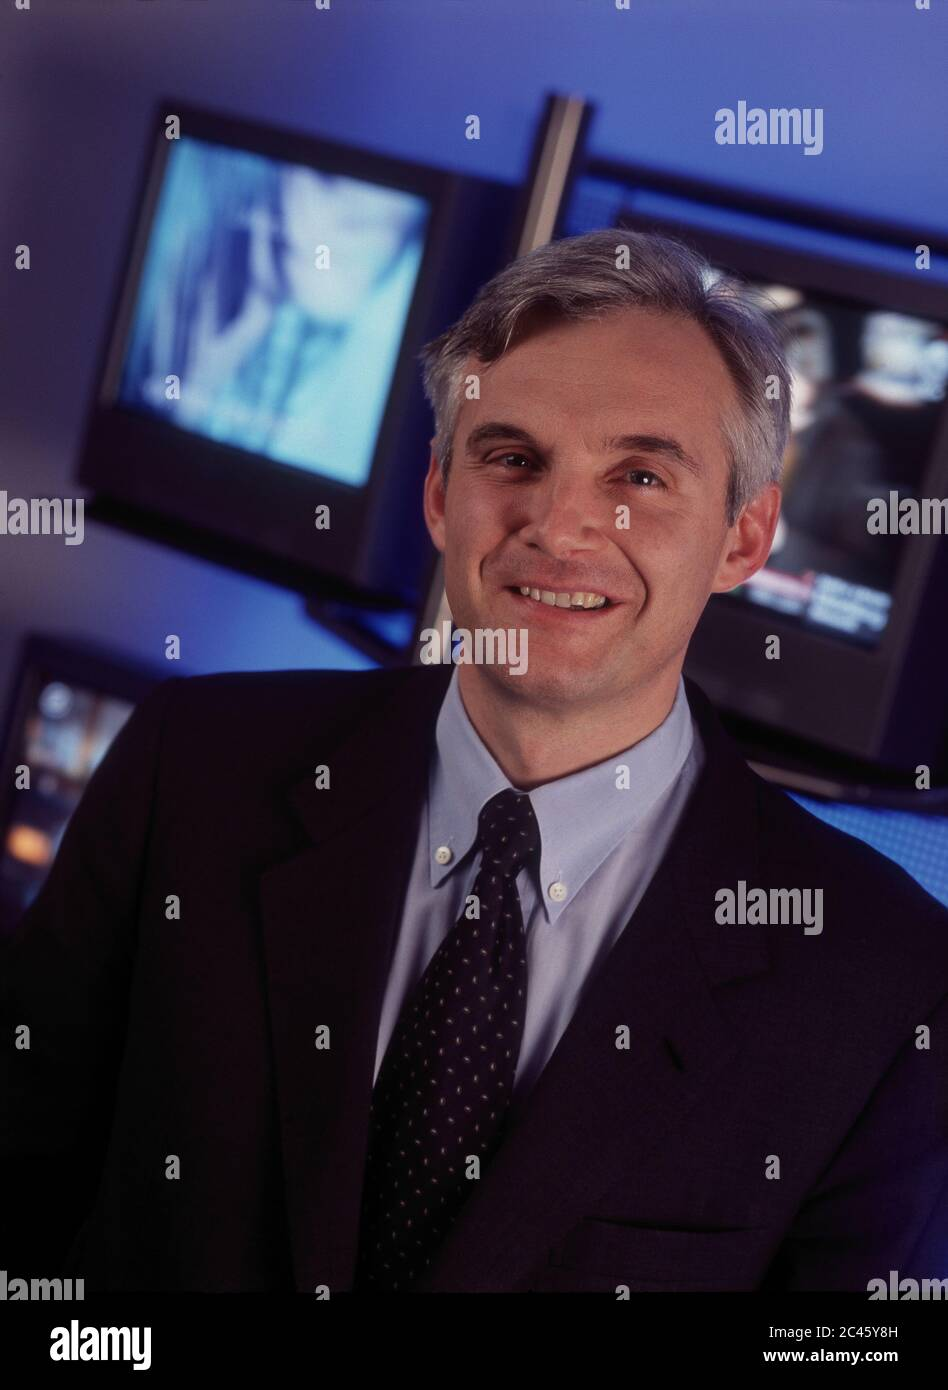 Urs Rohner - CEO of Pro7 Media AG Stock Photo